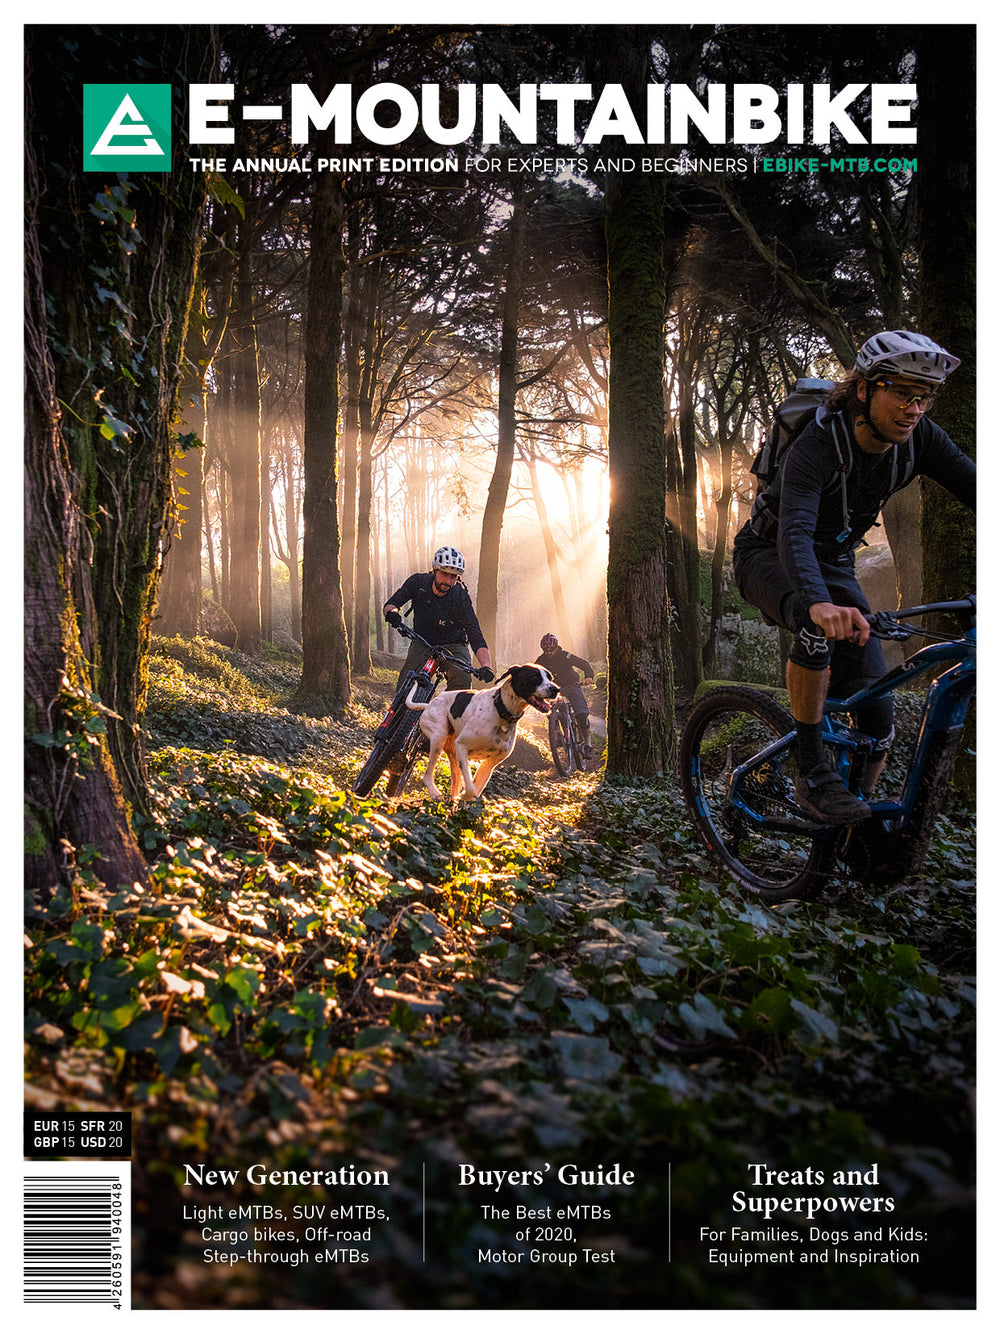 E-MOUNTAINBIKE Print Edition 2020 (English)